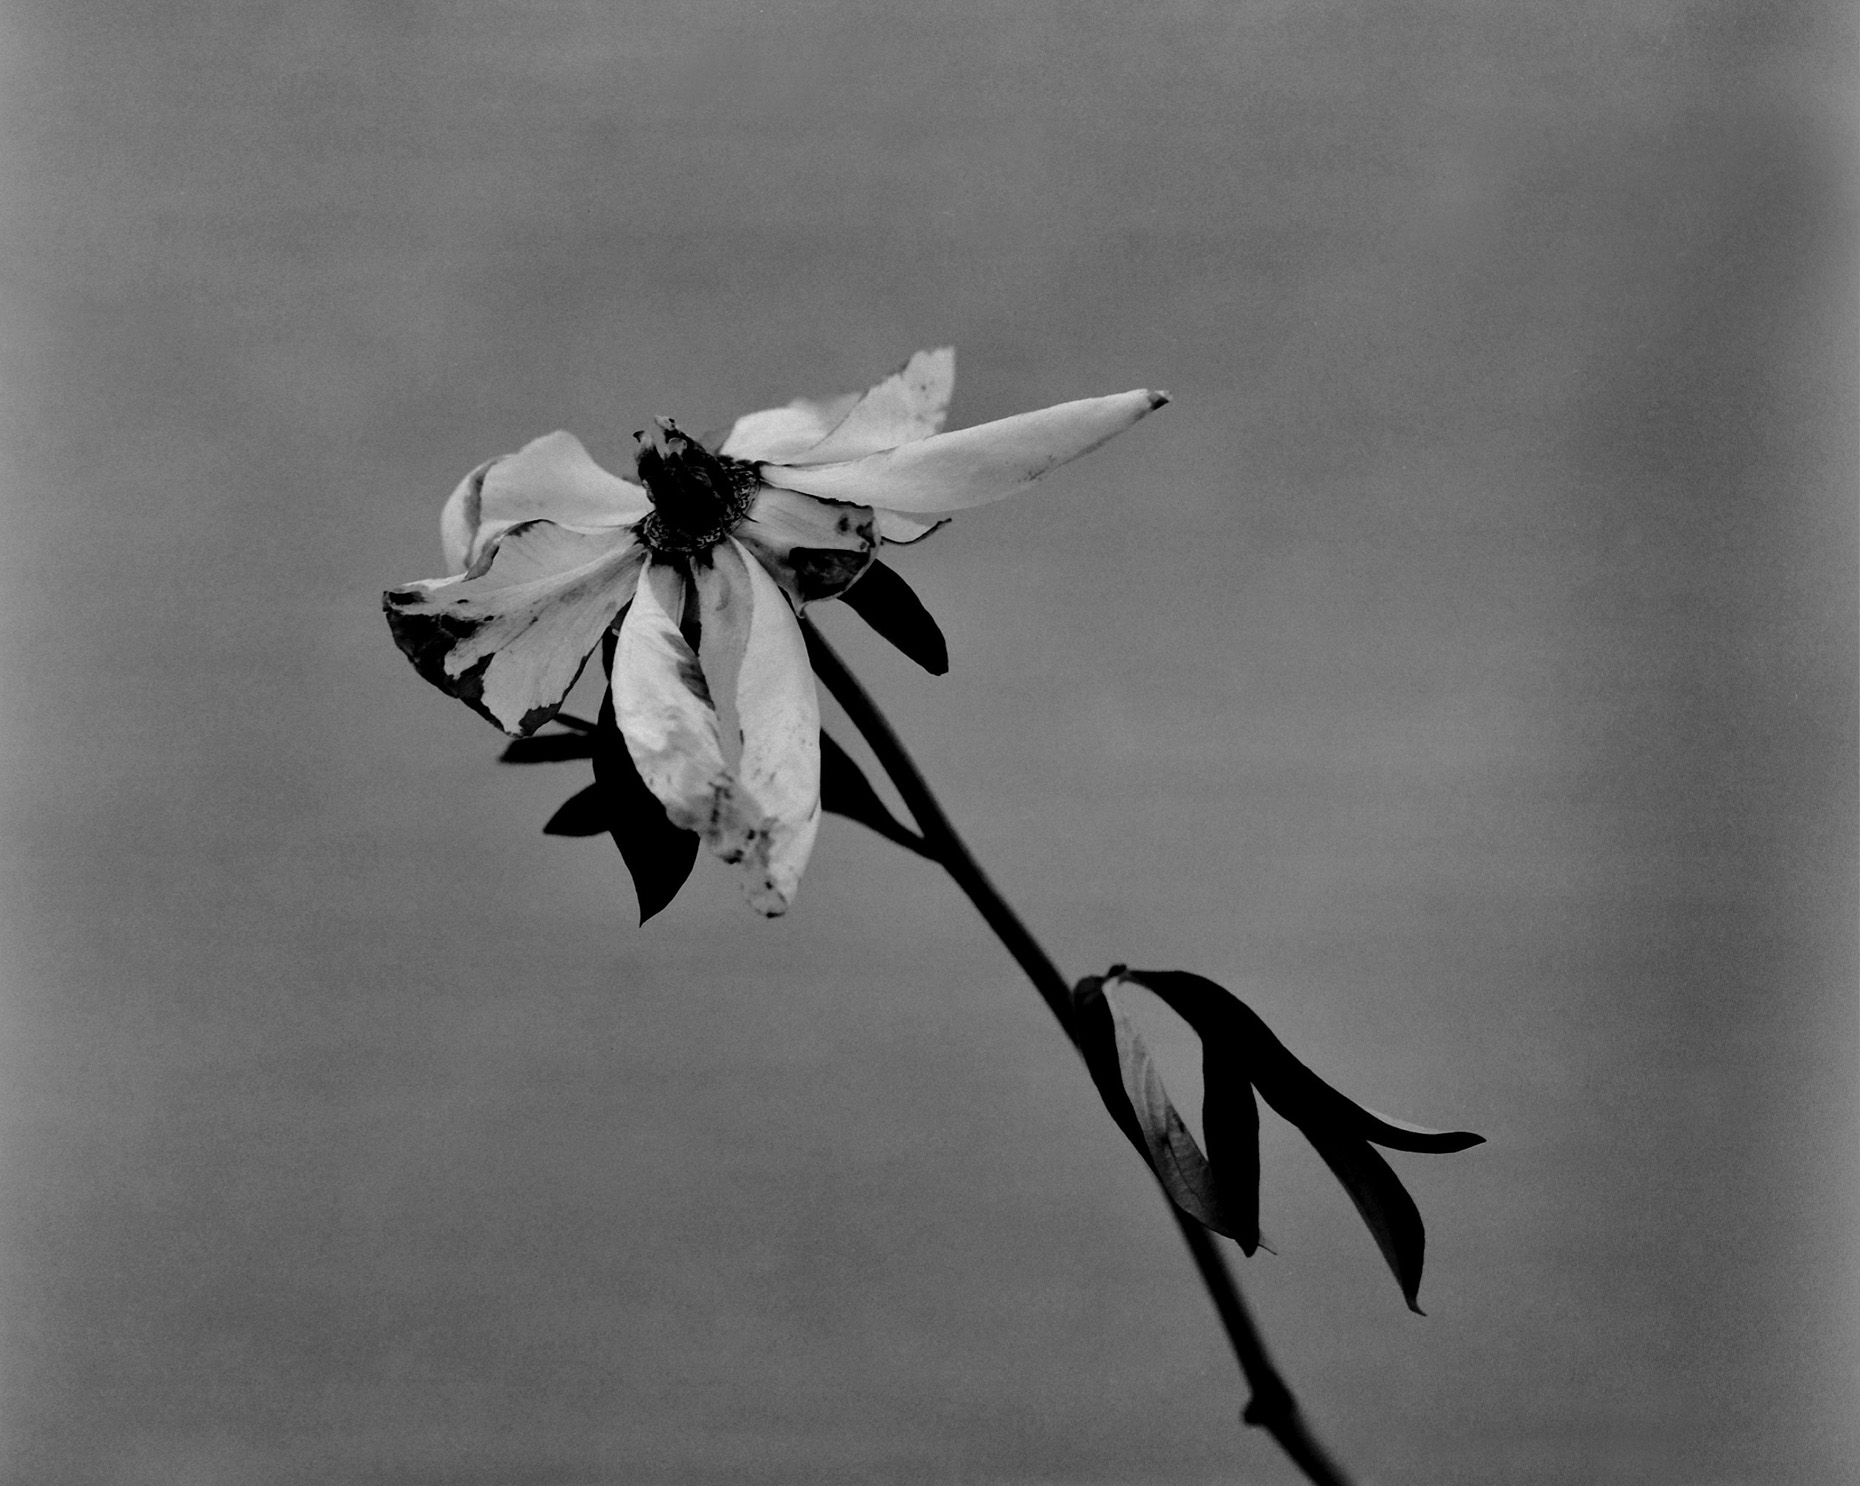 Axel Bernstorff, Collectable limited edition fine art photographic prints. Open Peony flower, (Paeoniaceae family) Platinum / Palladium and silver gelatin prints available.